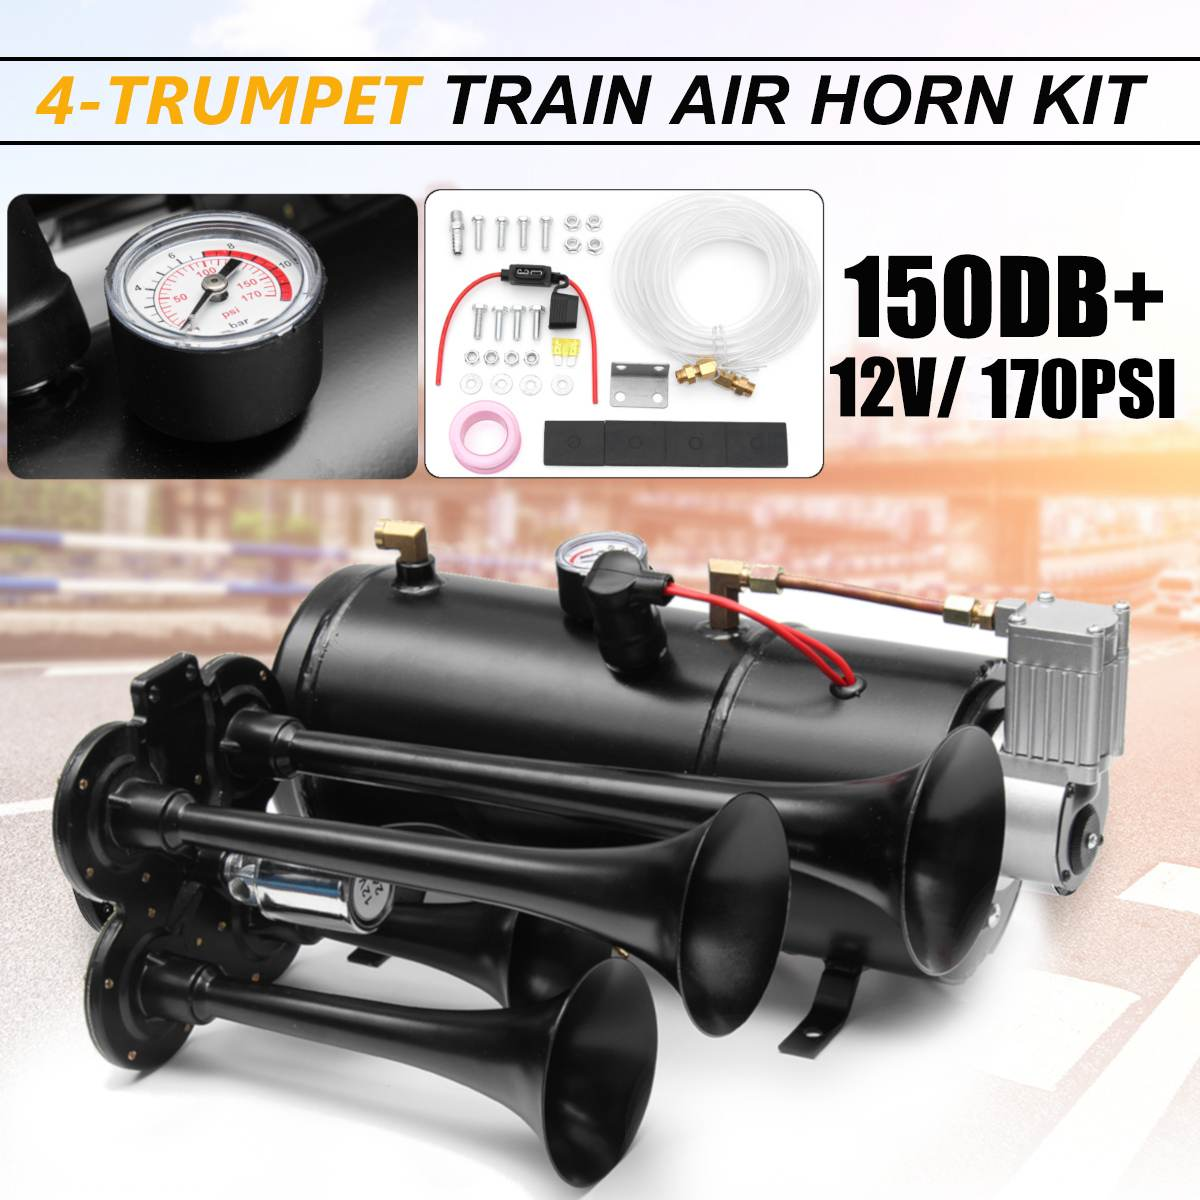 Camion Train Quad 4 trompette Air klaxon Kit noir 170 PSI 12V 3 litres compresseur & maison 150db